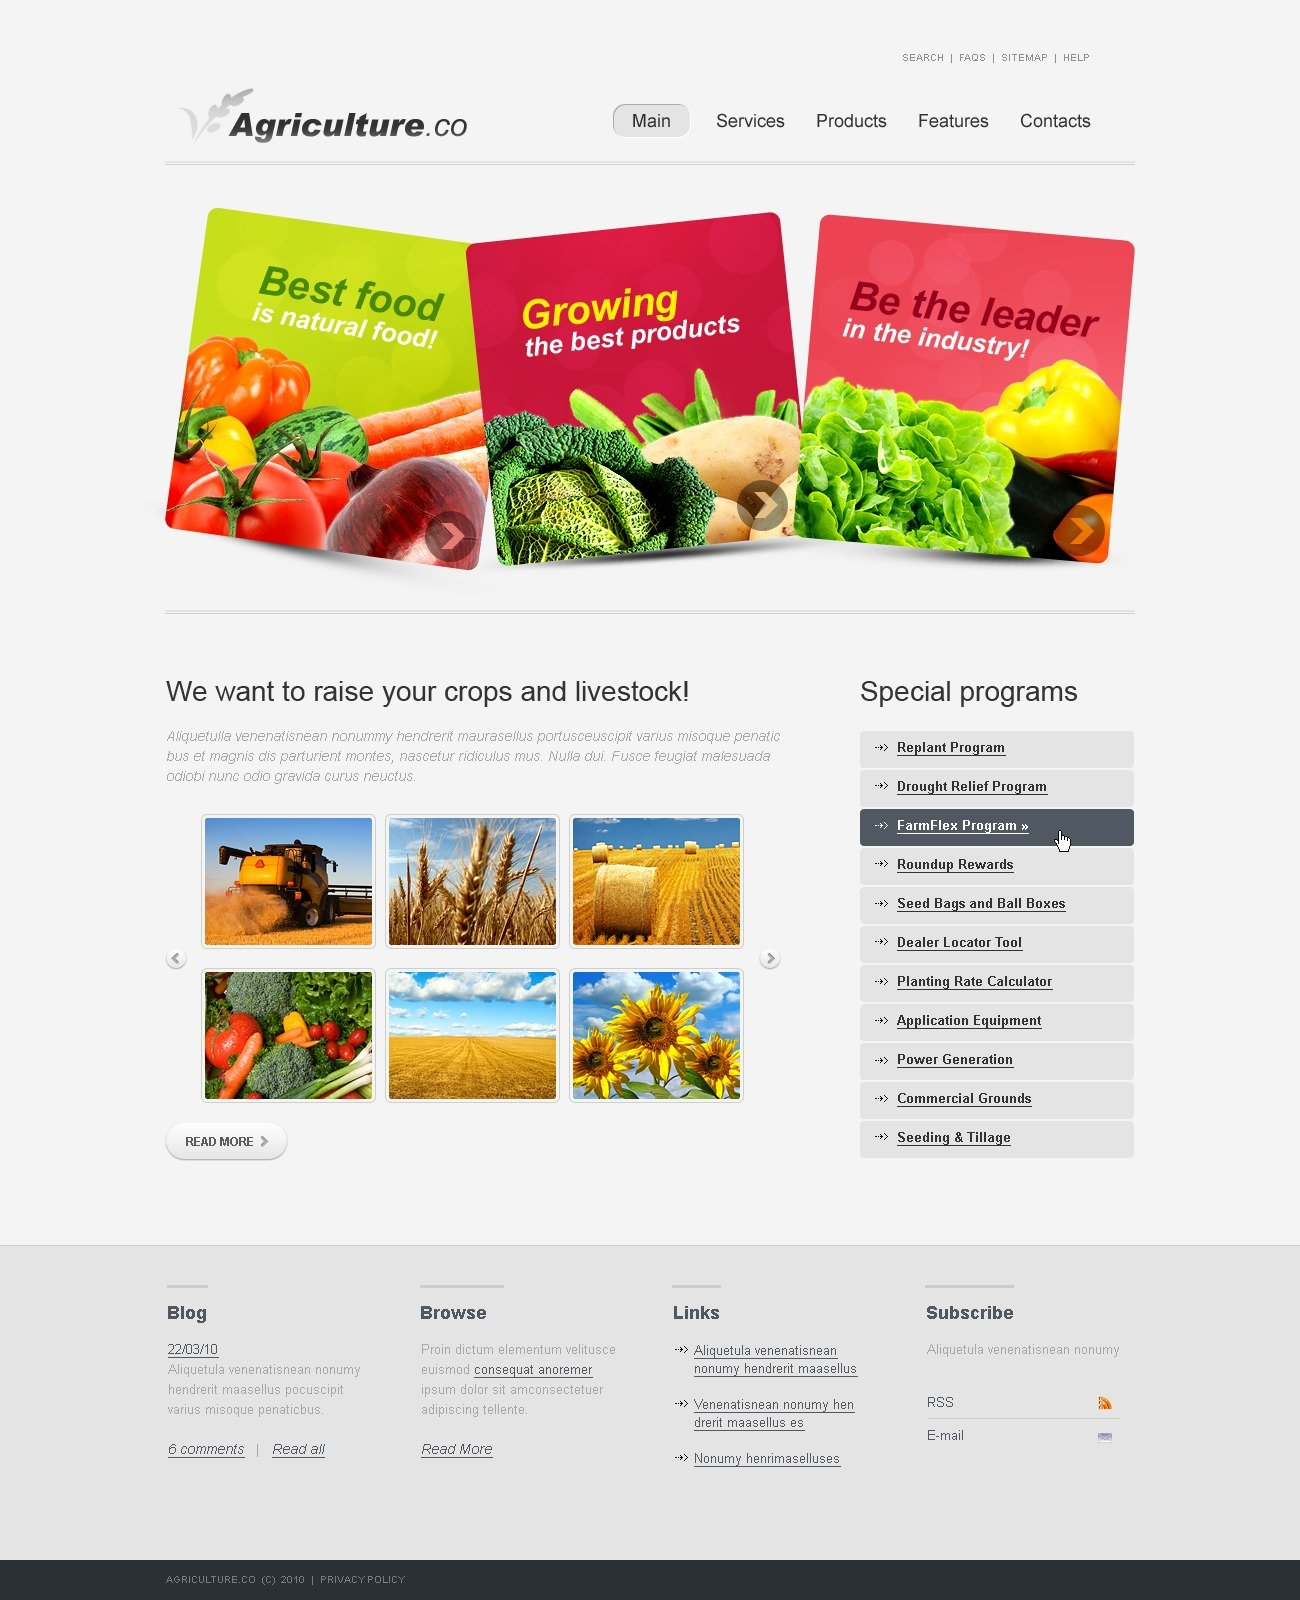 The Agriculture Company PSD Design 54234, one of the best PSD templates of its kind (agriculture, wide, jquery), also known as agriculture company PSD template, business PSD template, grain-crops PSD template, cereals PSD template, field PSD template, combine PSD template, harvest PSD template, farming PSD template, plants PSD template, services PSD template, products solutions PSD template, market PSD template, delivery PSD template, resource PSD template, grassland PSD template, equipment PSD template, nitrates PSD template, fertilizer PSD template, clients PSD template, partners PSD template, innovations PSD template, support PSD template, information dealer PSD template, stocks PSD template, tea and related with agriculture company, business, grain-crops, cereals, field, combine, harvest, farming, plants, services, products solutions, market, delivery, resource, grassland, equipment, nitrates, fertilizer, clients, partners, innovations, support, information dealer, stocks, tea, etc.